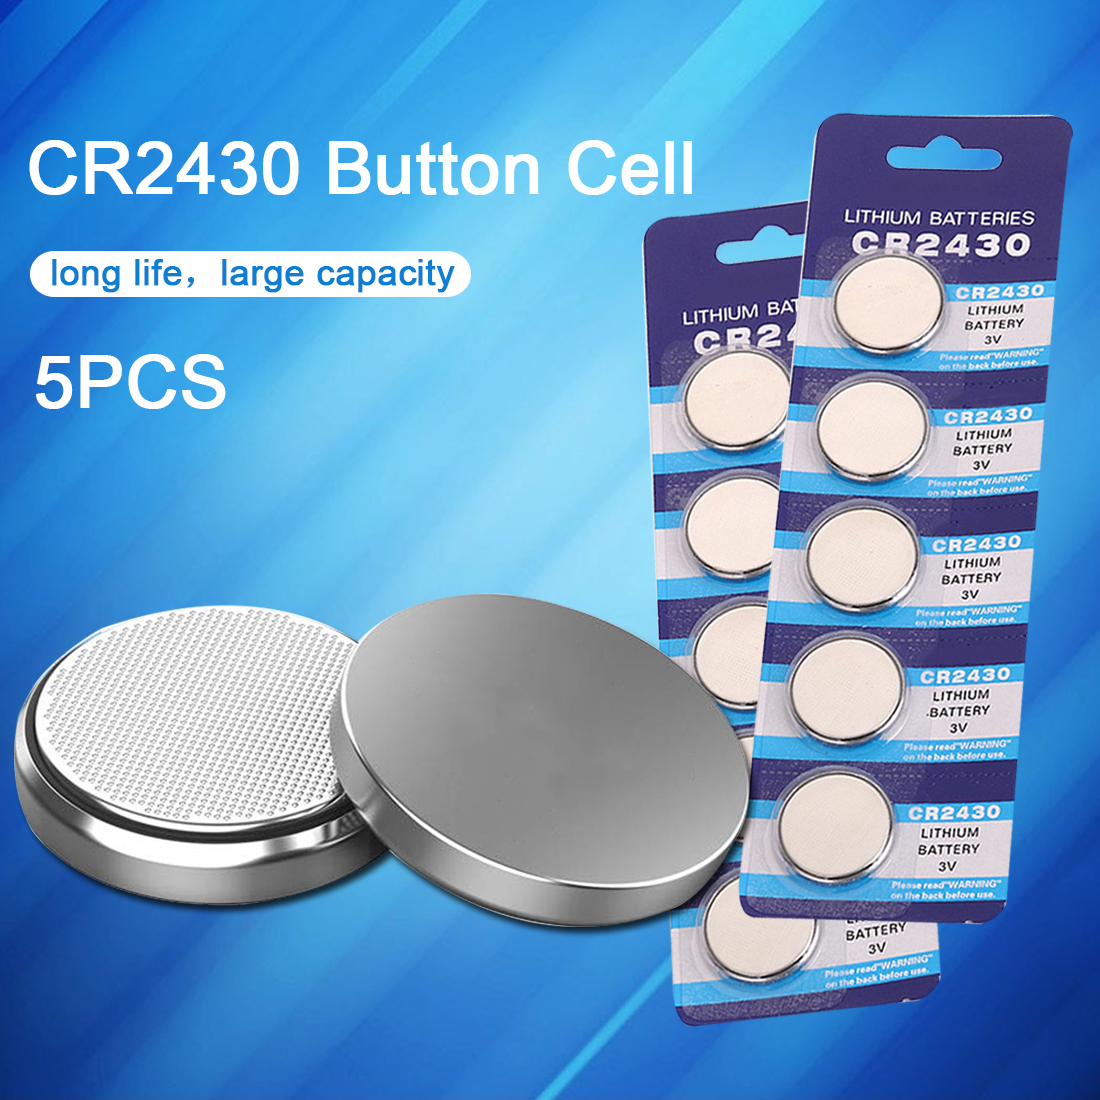 5PCS CR2430 Watch Battery Button Battery DL2430 BR2430 ECR2430 Coin Cell Lithium Batteries for Toy Calculator Clock Watch